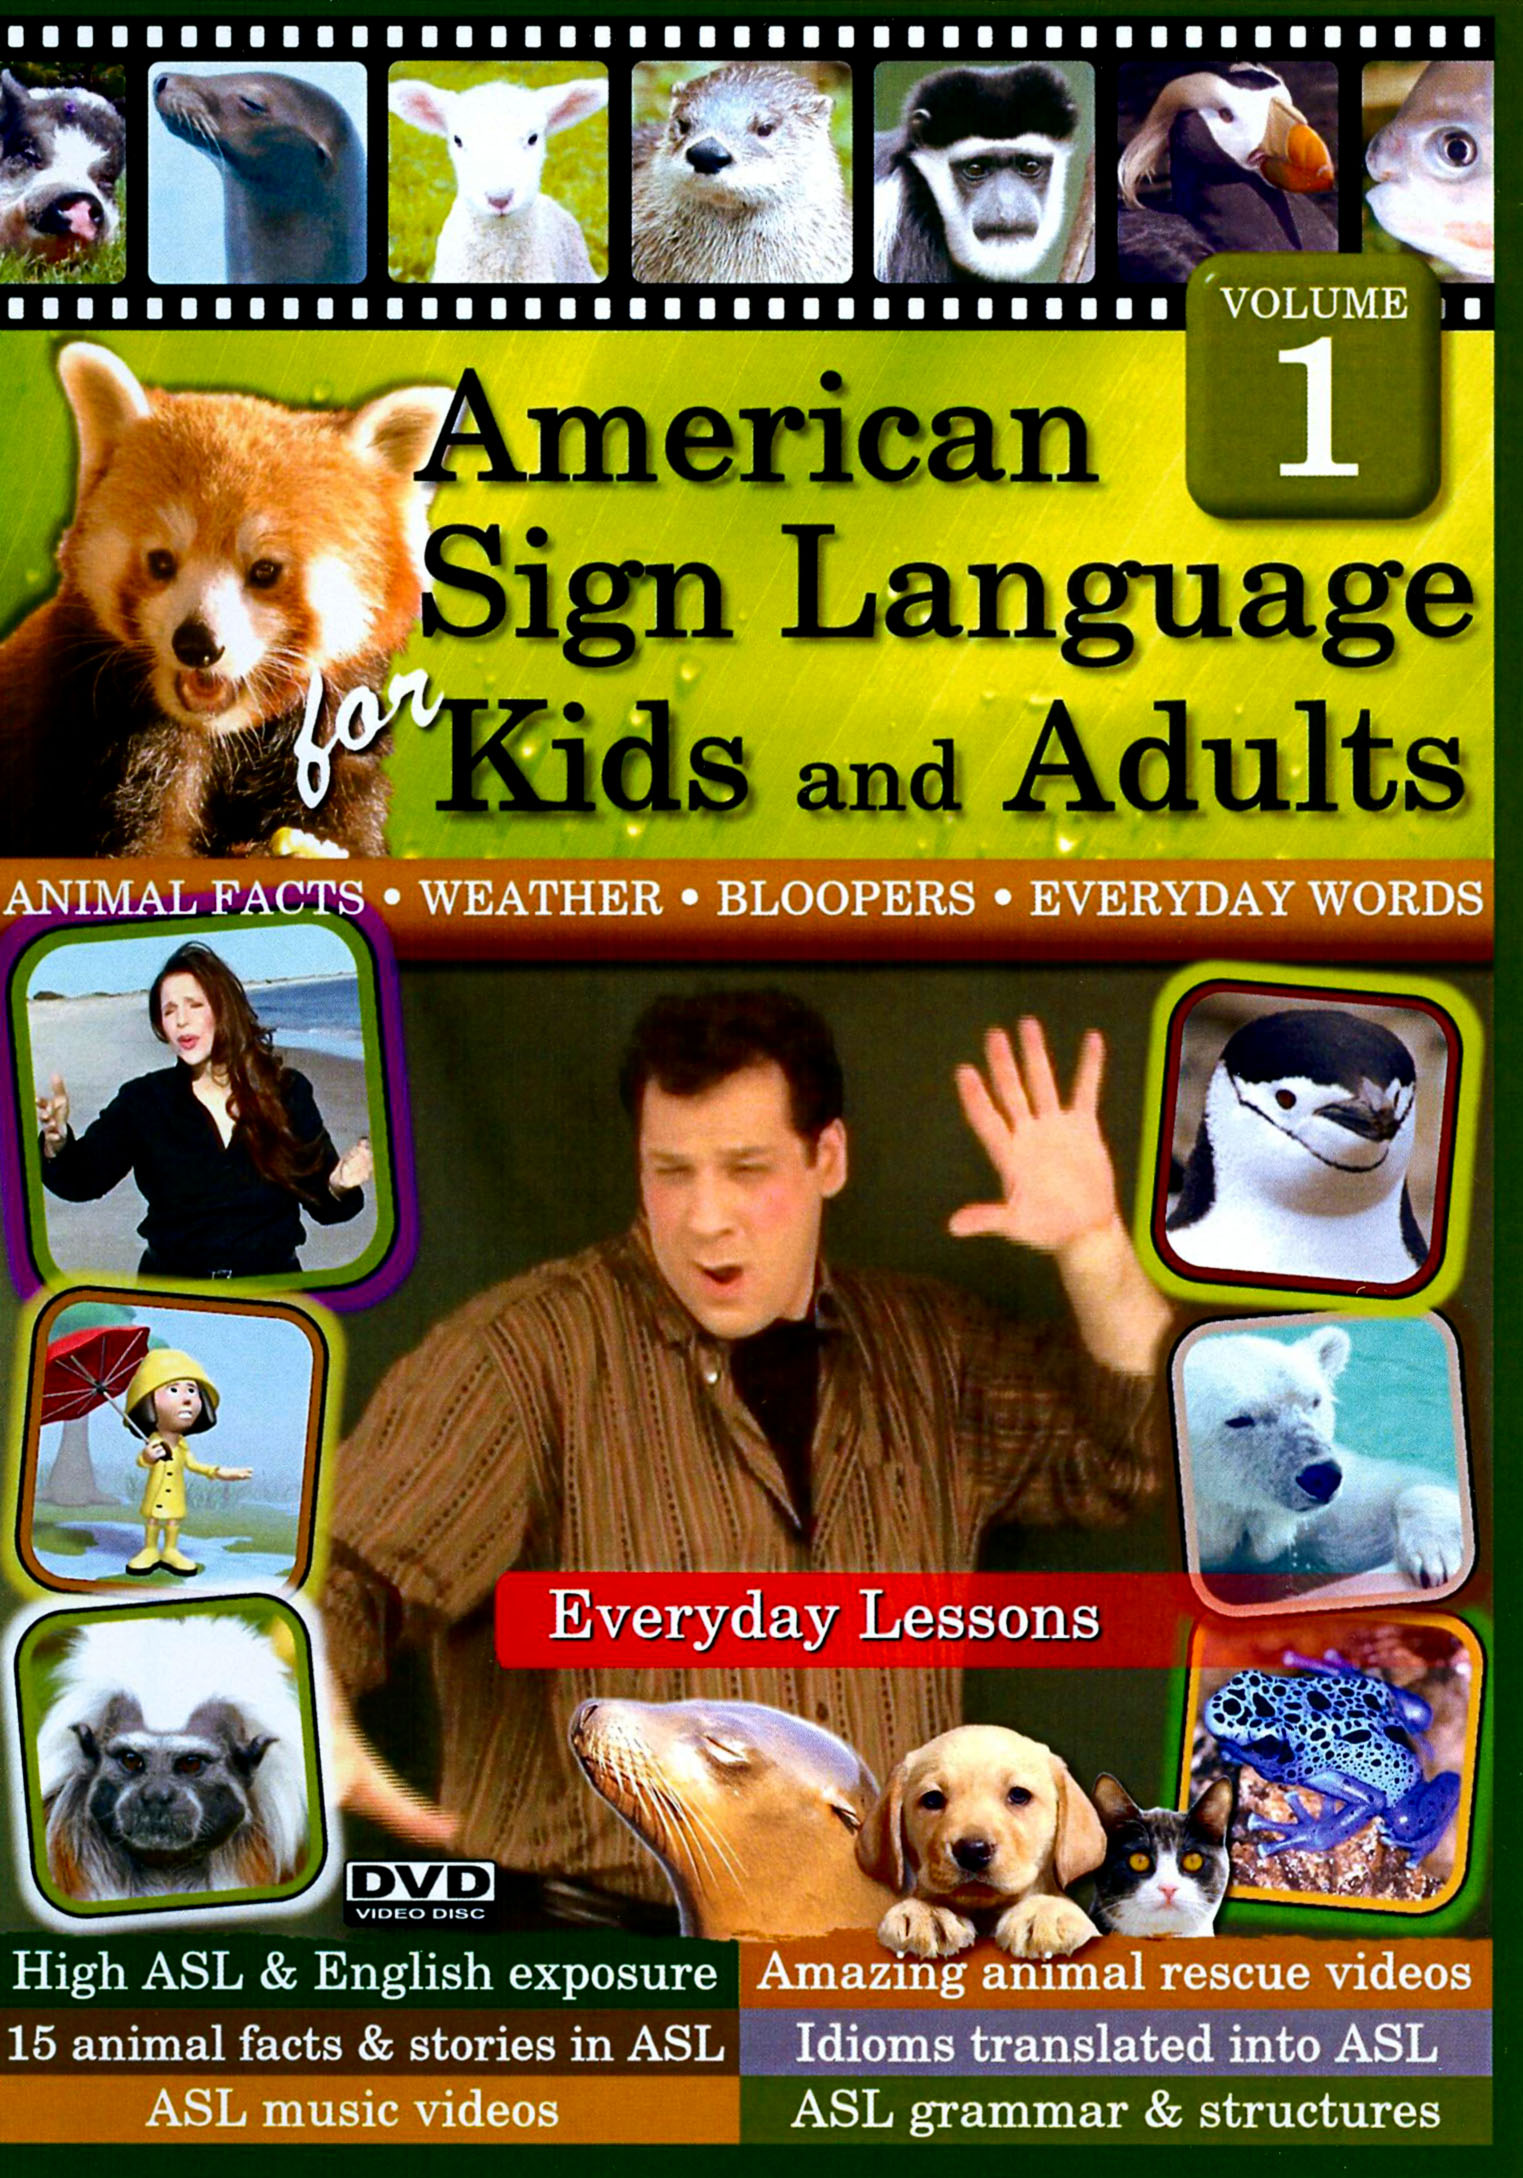 Best sign language dvd for adults